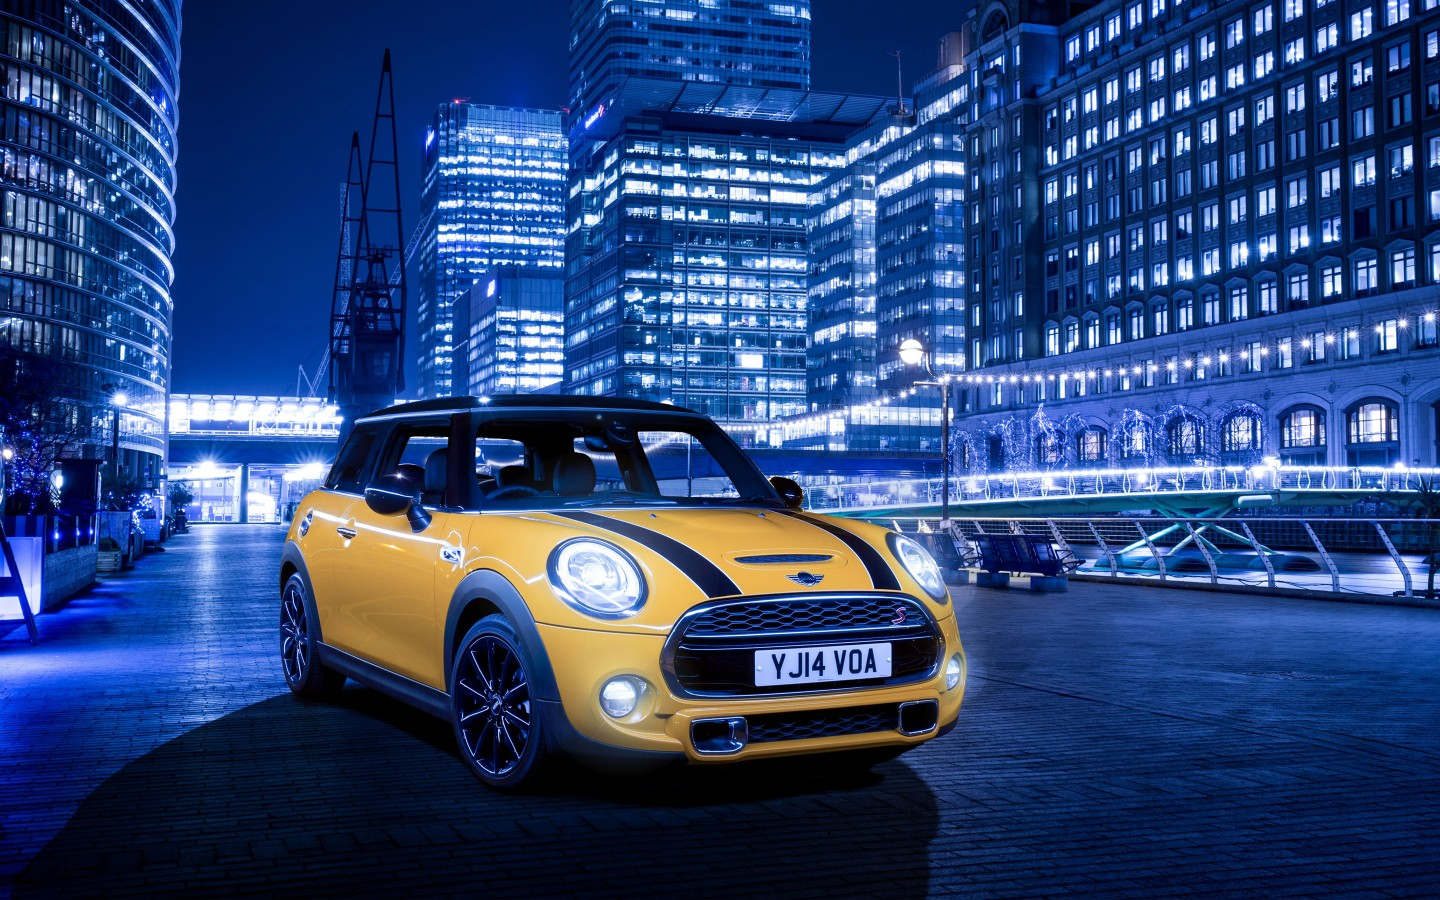 2014 mini cooper s wallpaper hd car wallpapers id 4309 - Cars hd wallpapers for laptop ...